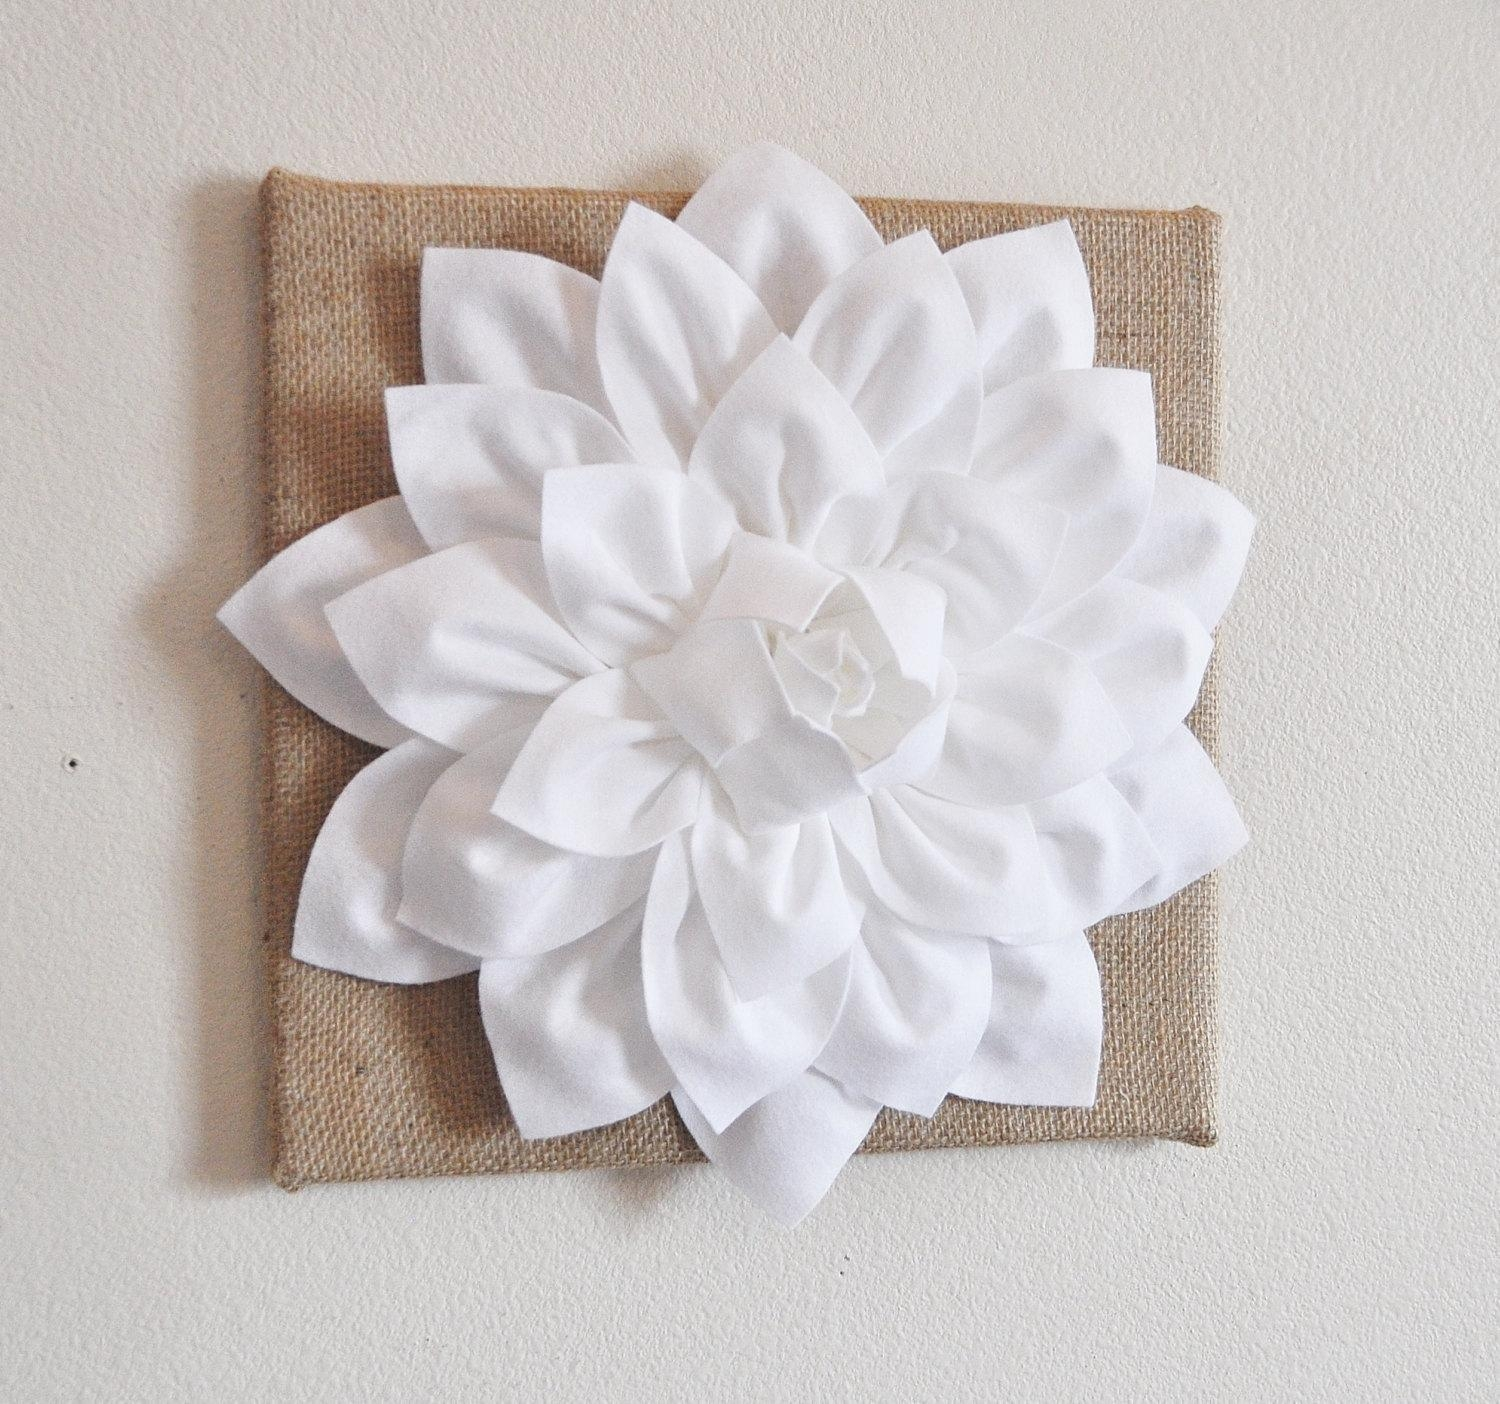 Wall Flower White Dahlia On Burlap 12 X12 Canvas Wall Intended For White 3D Wall Art (Image 18 of 20)